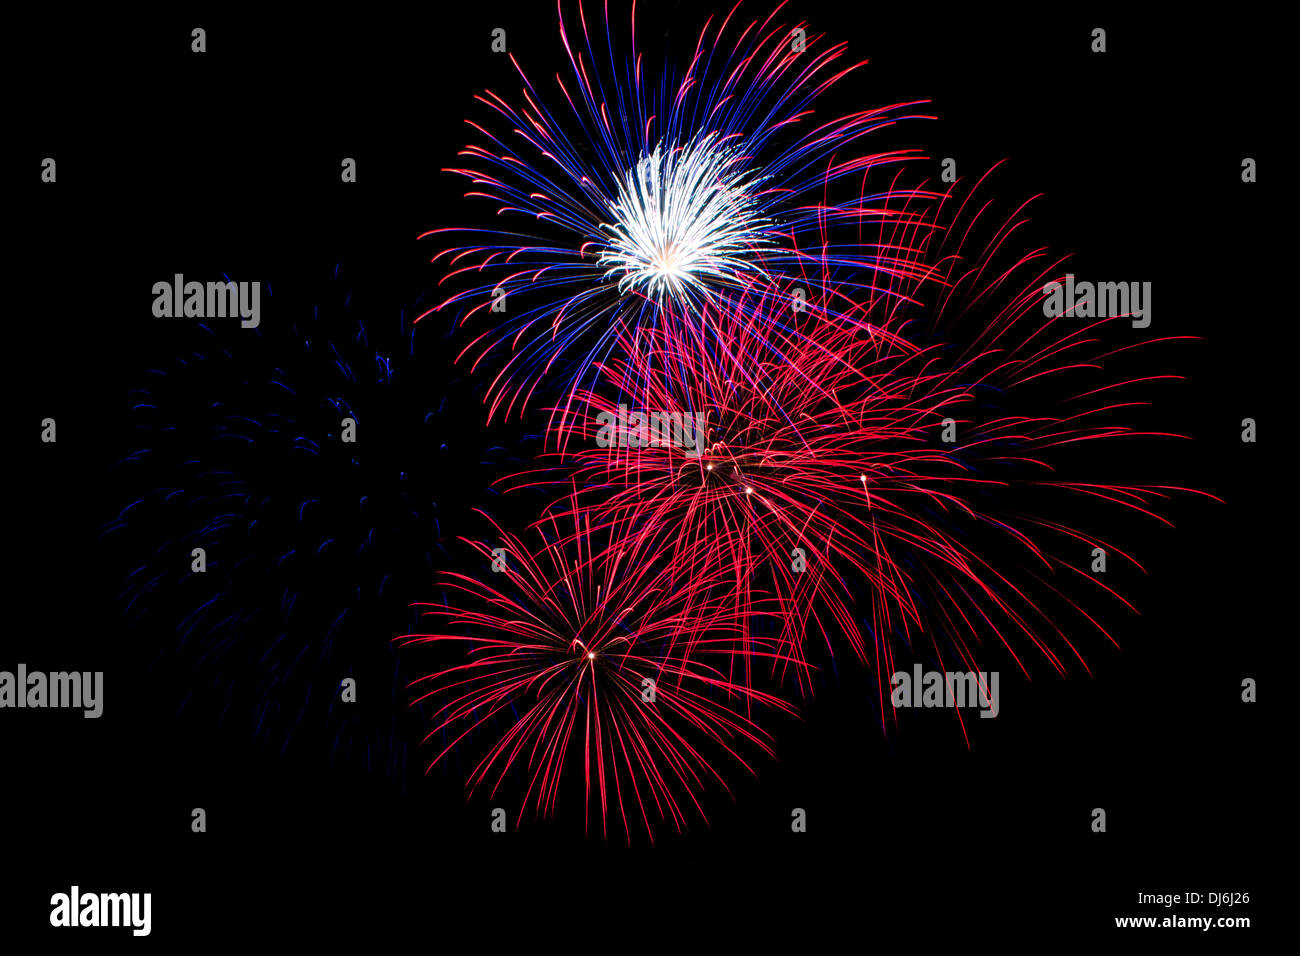 Red Fireworks Free Stock Photo: Red, White And Blue Fireworks On A Black Background Stock